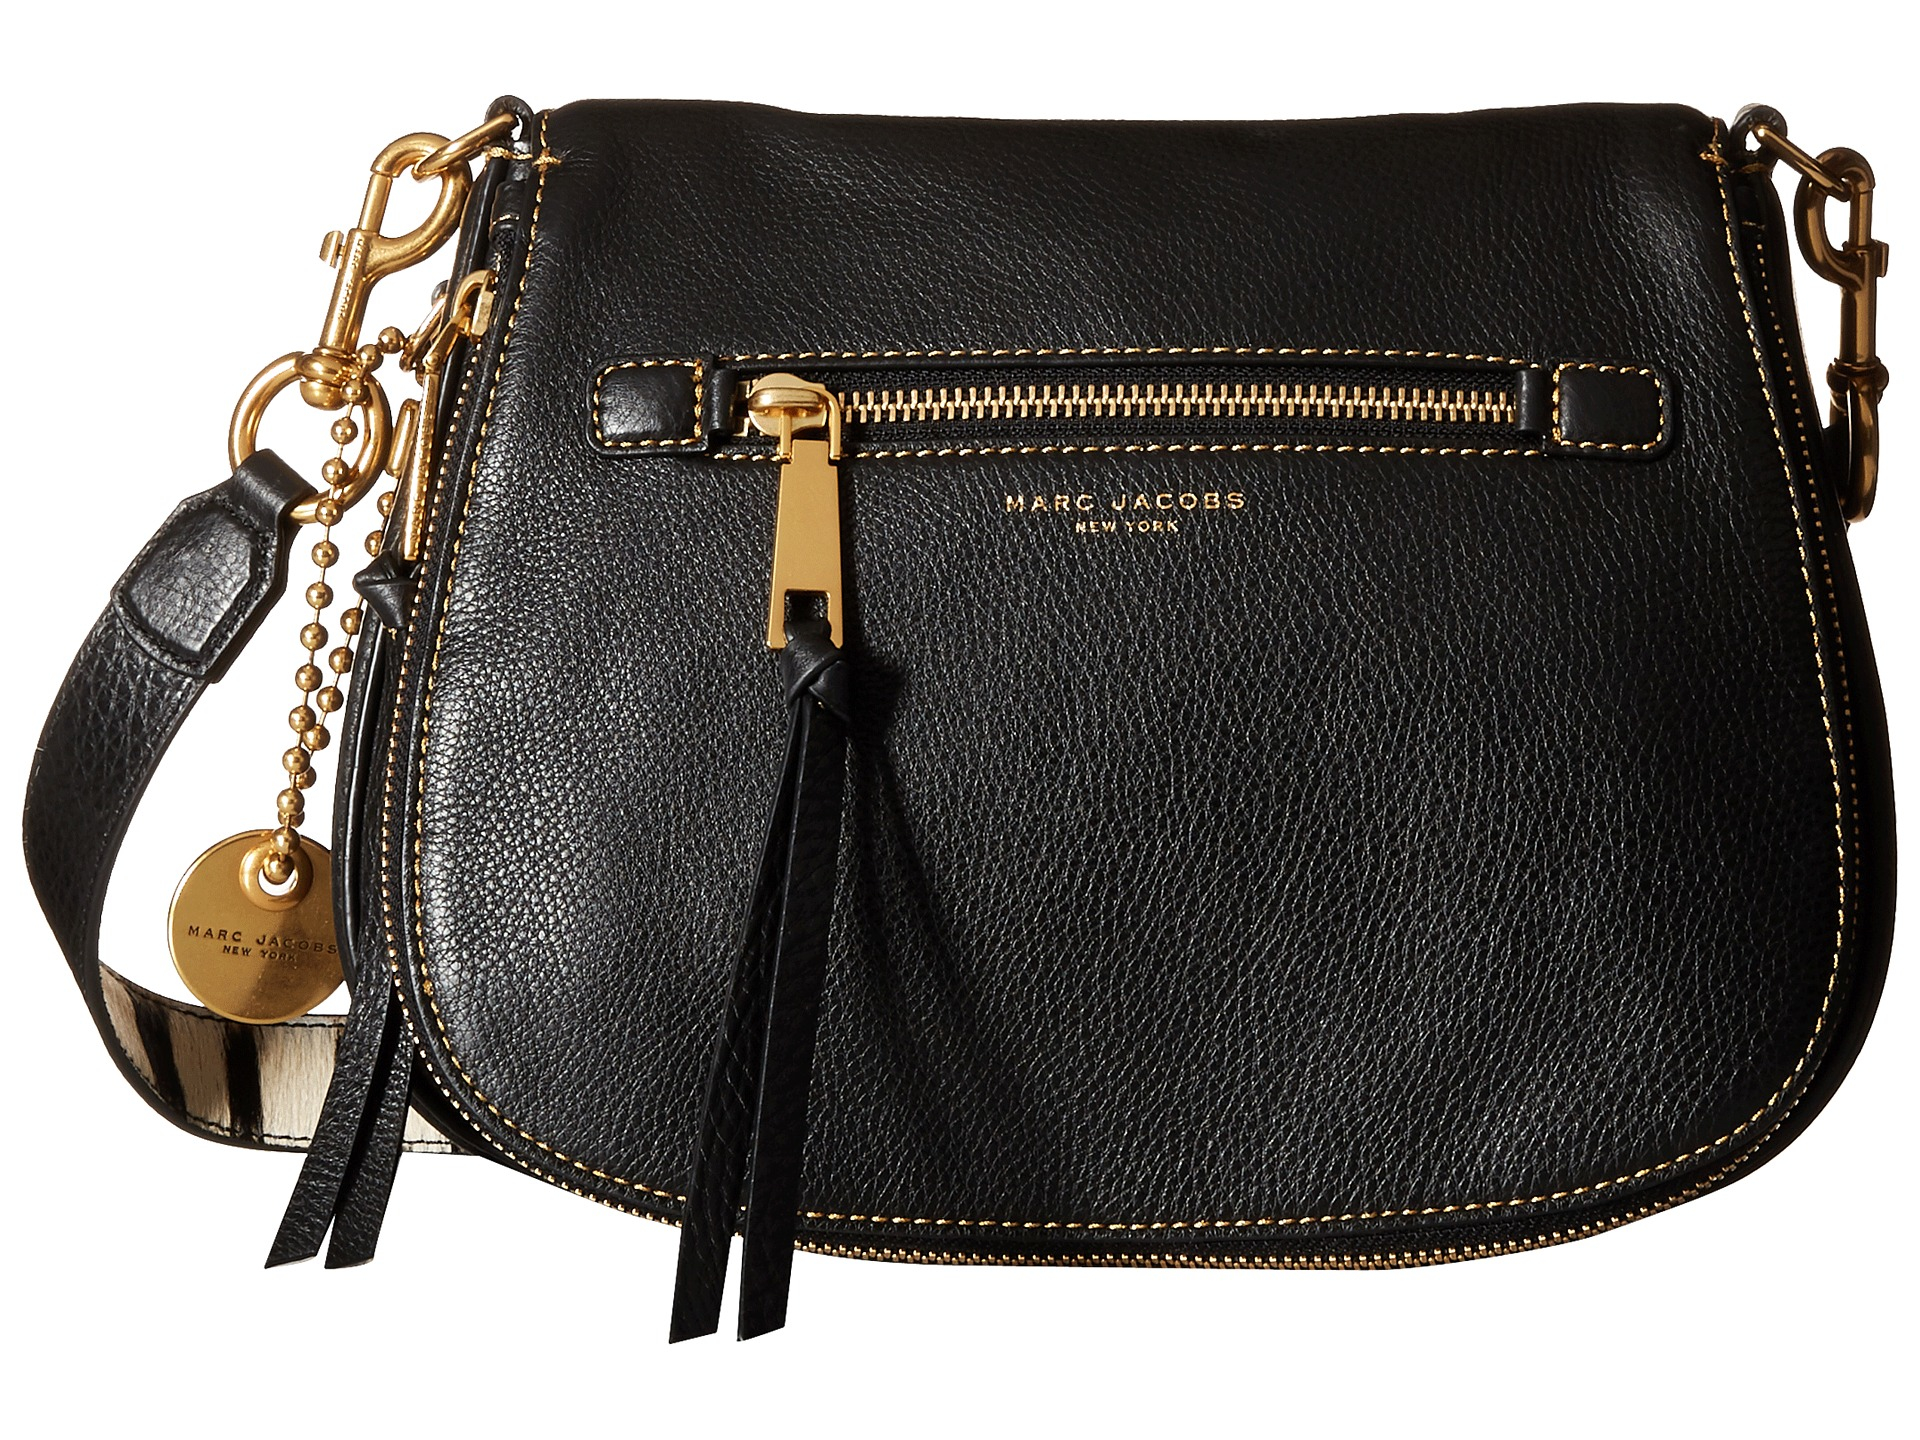 36f0abc7005 Gallery. Previously sold at: Zappos Luxury · Women's Saddle Bags